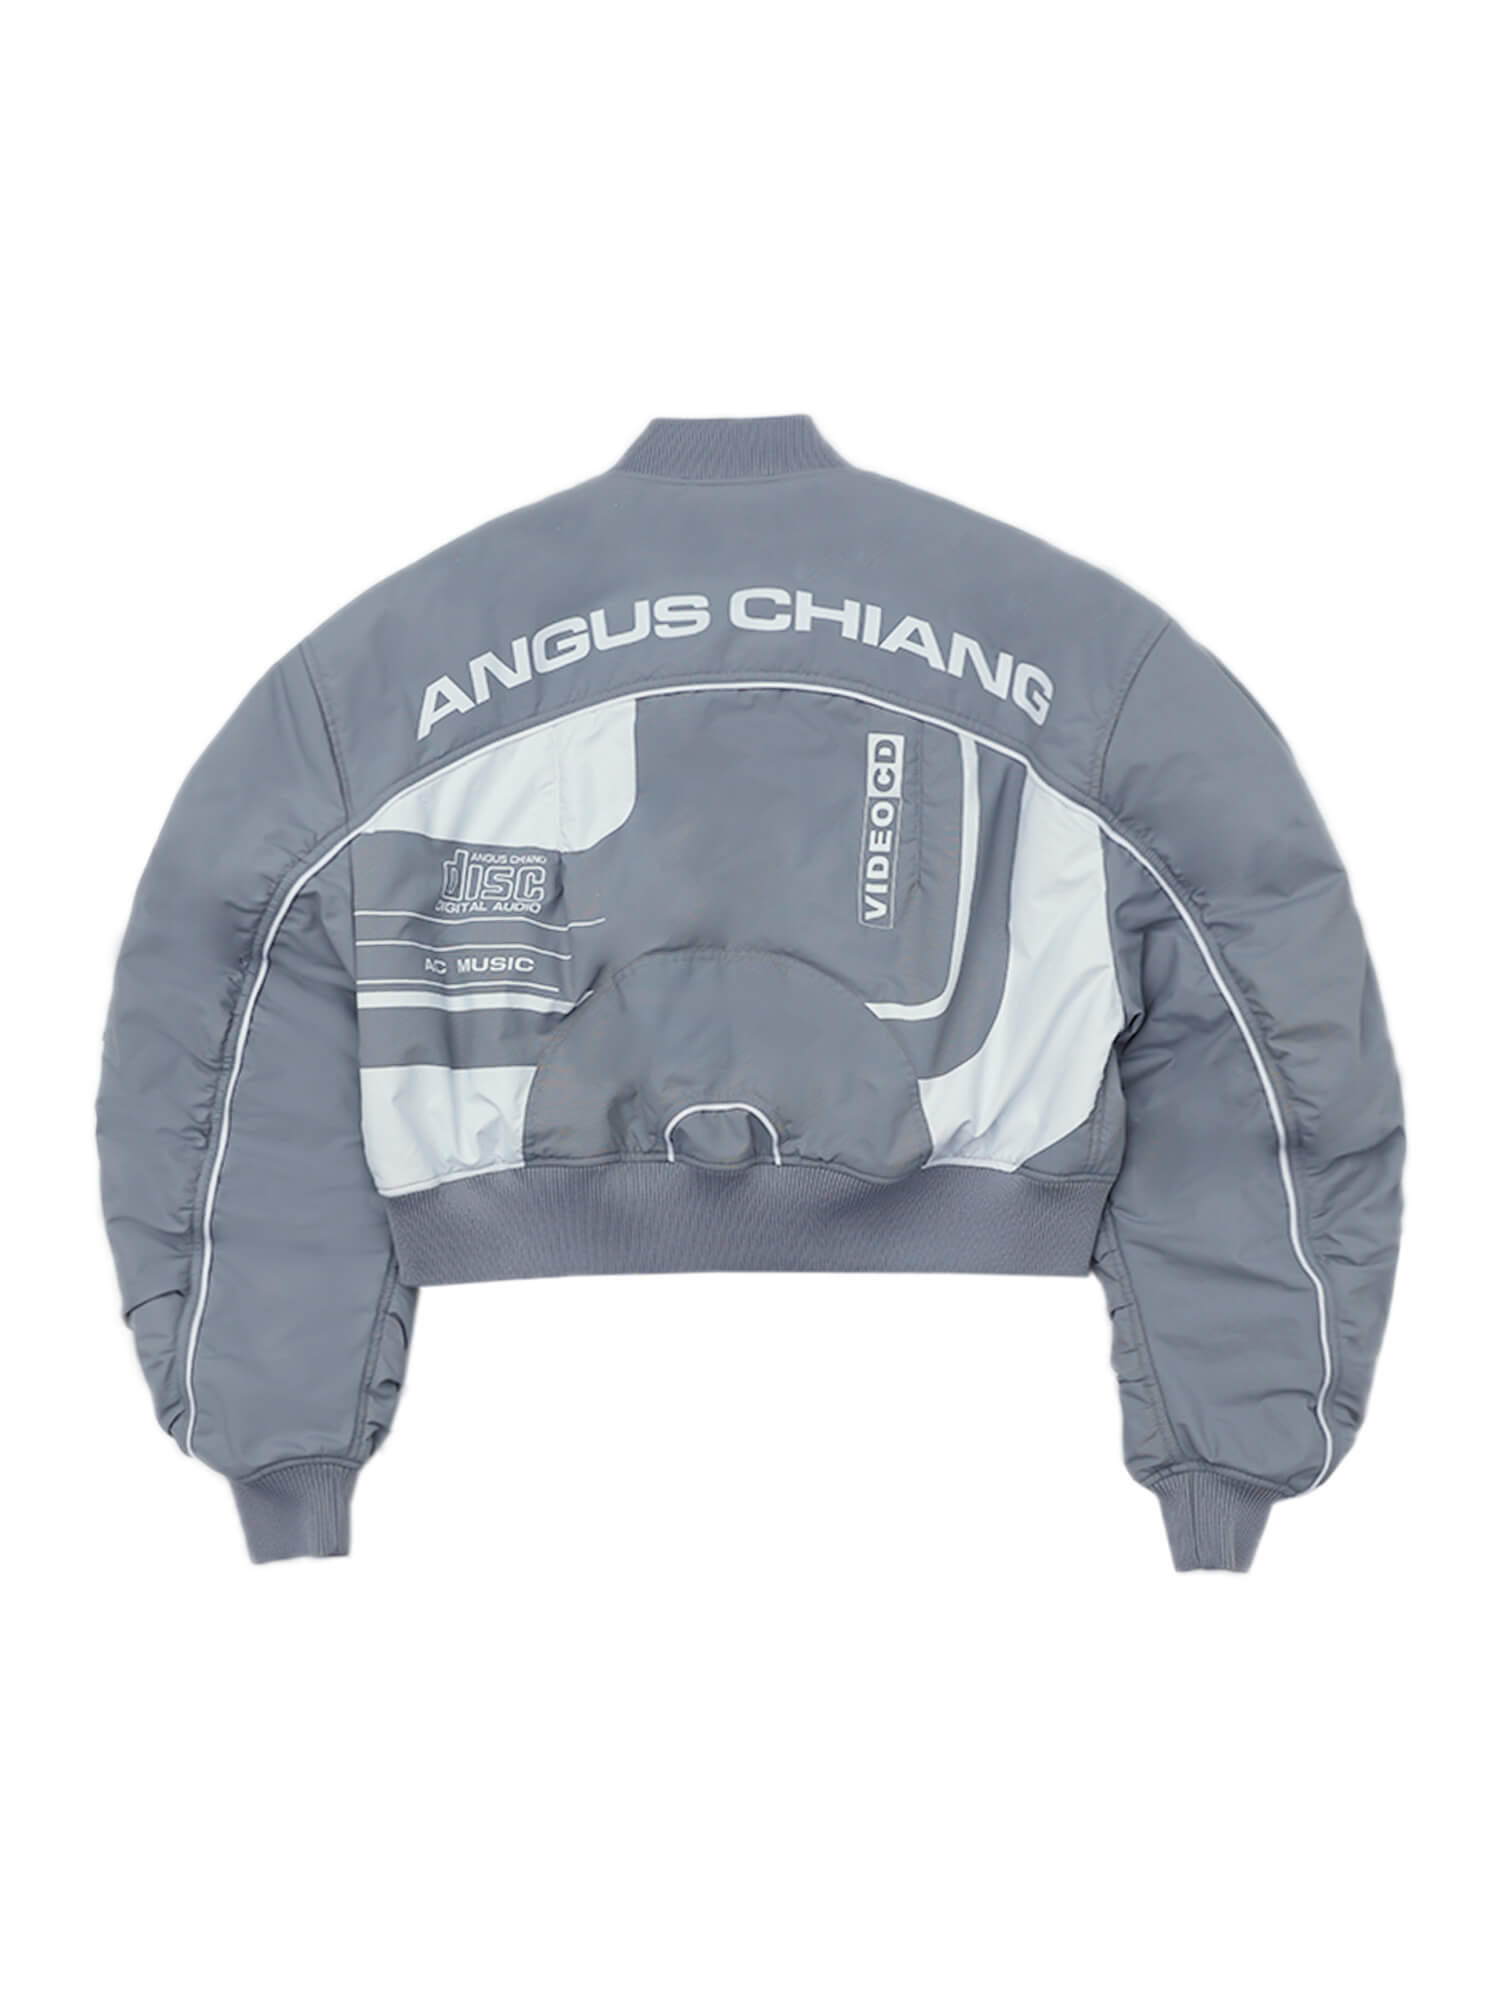 MUSIC EXPRESS MA-1 FLIGHT JACKET